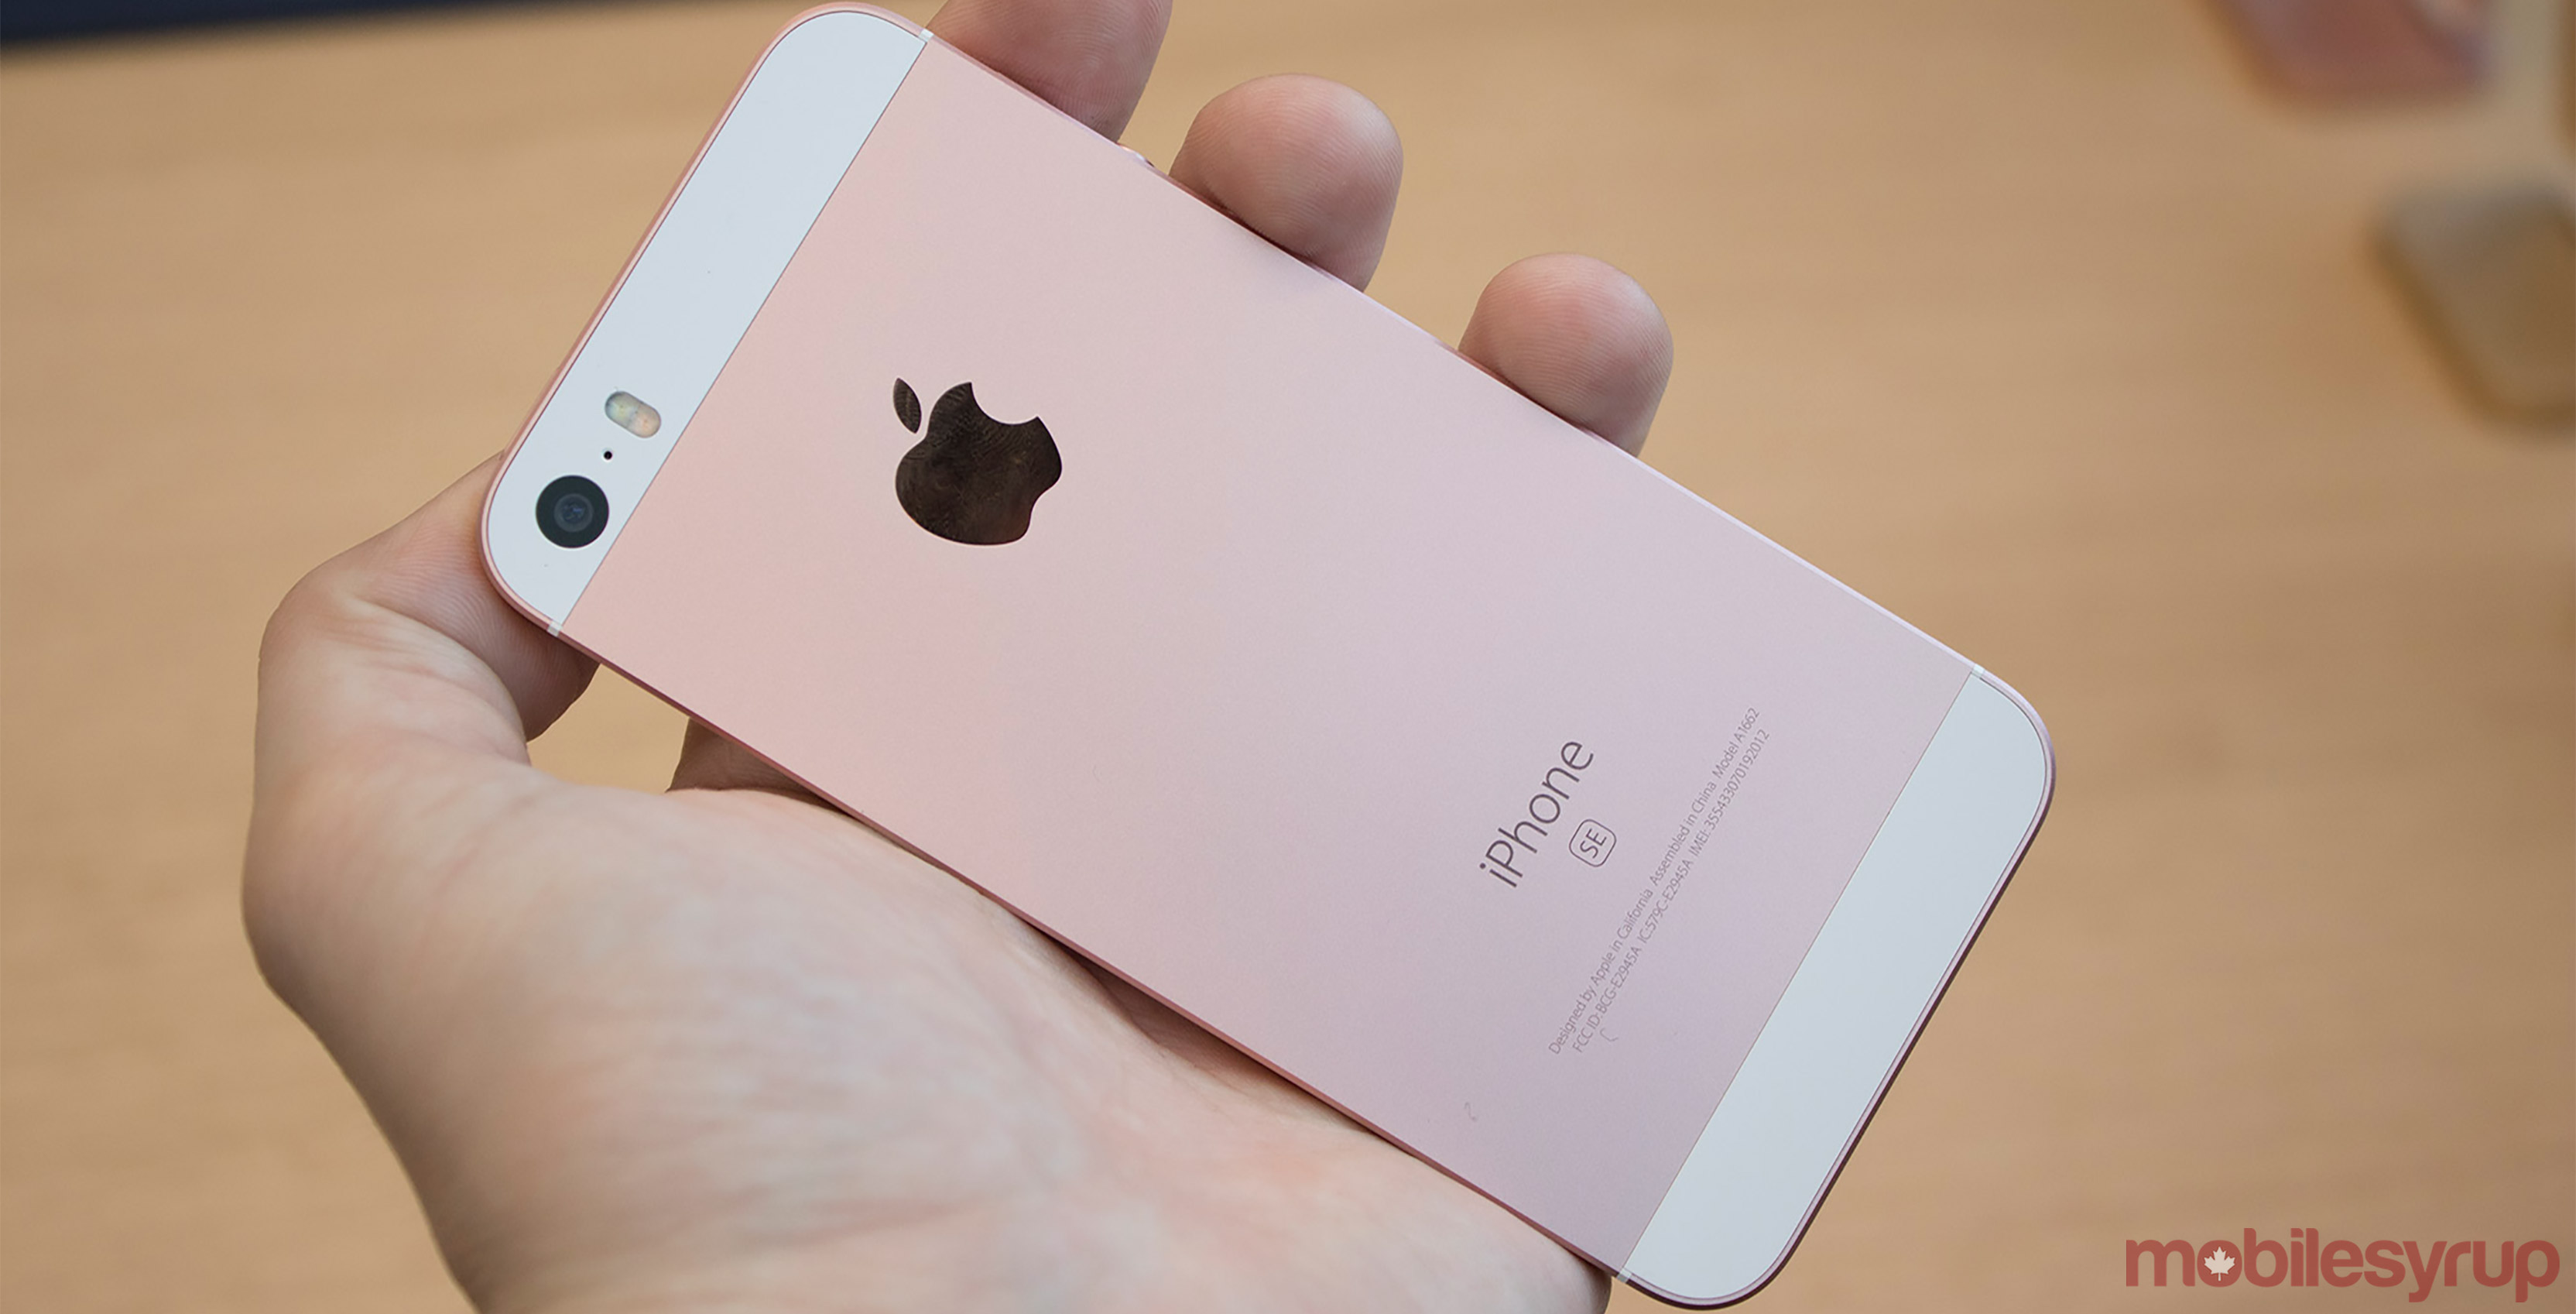 Apple iPhone SE 2 iPhone 9 Specs